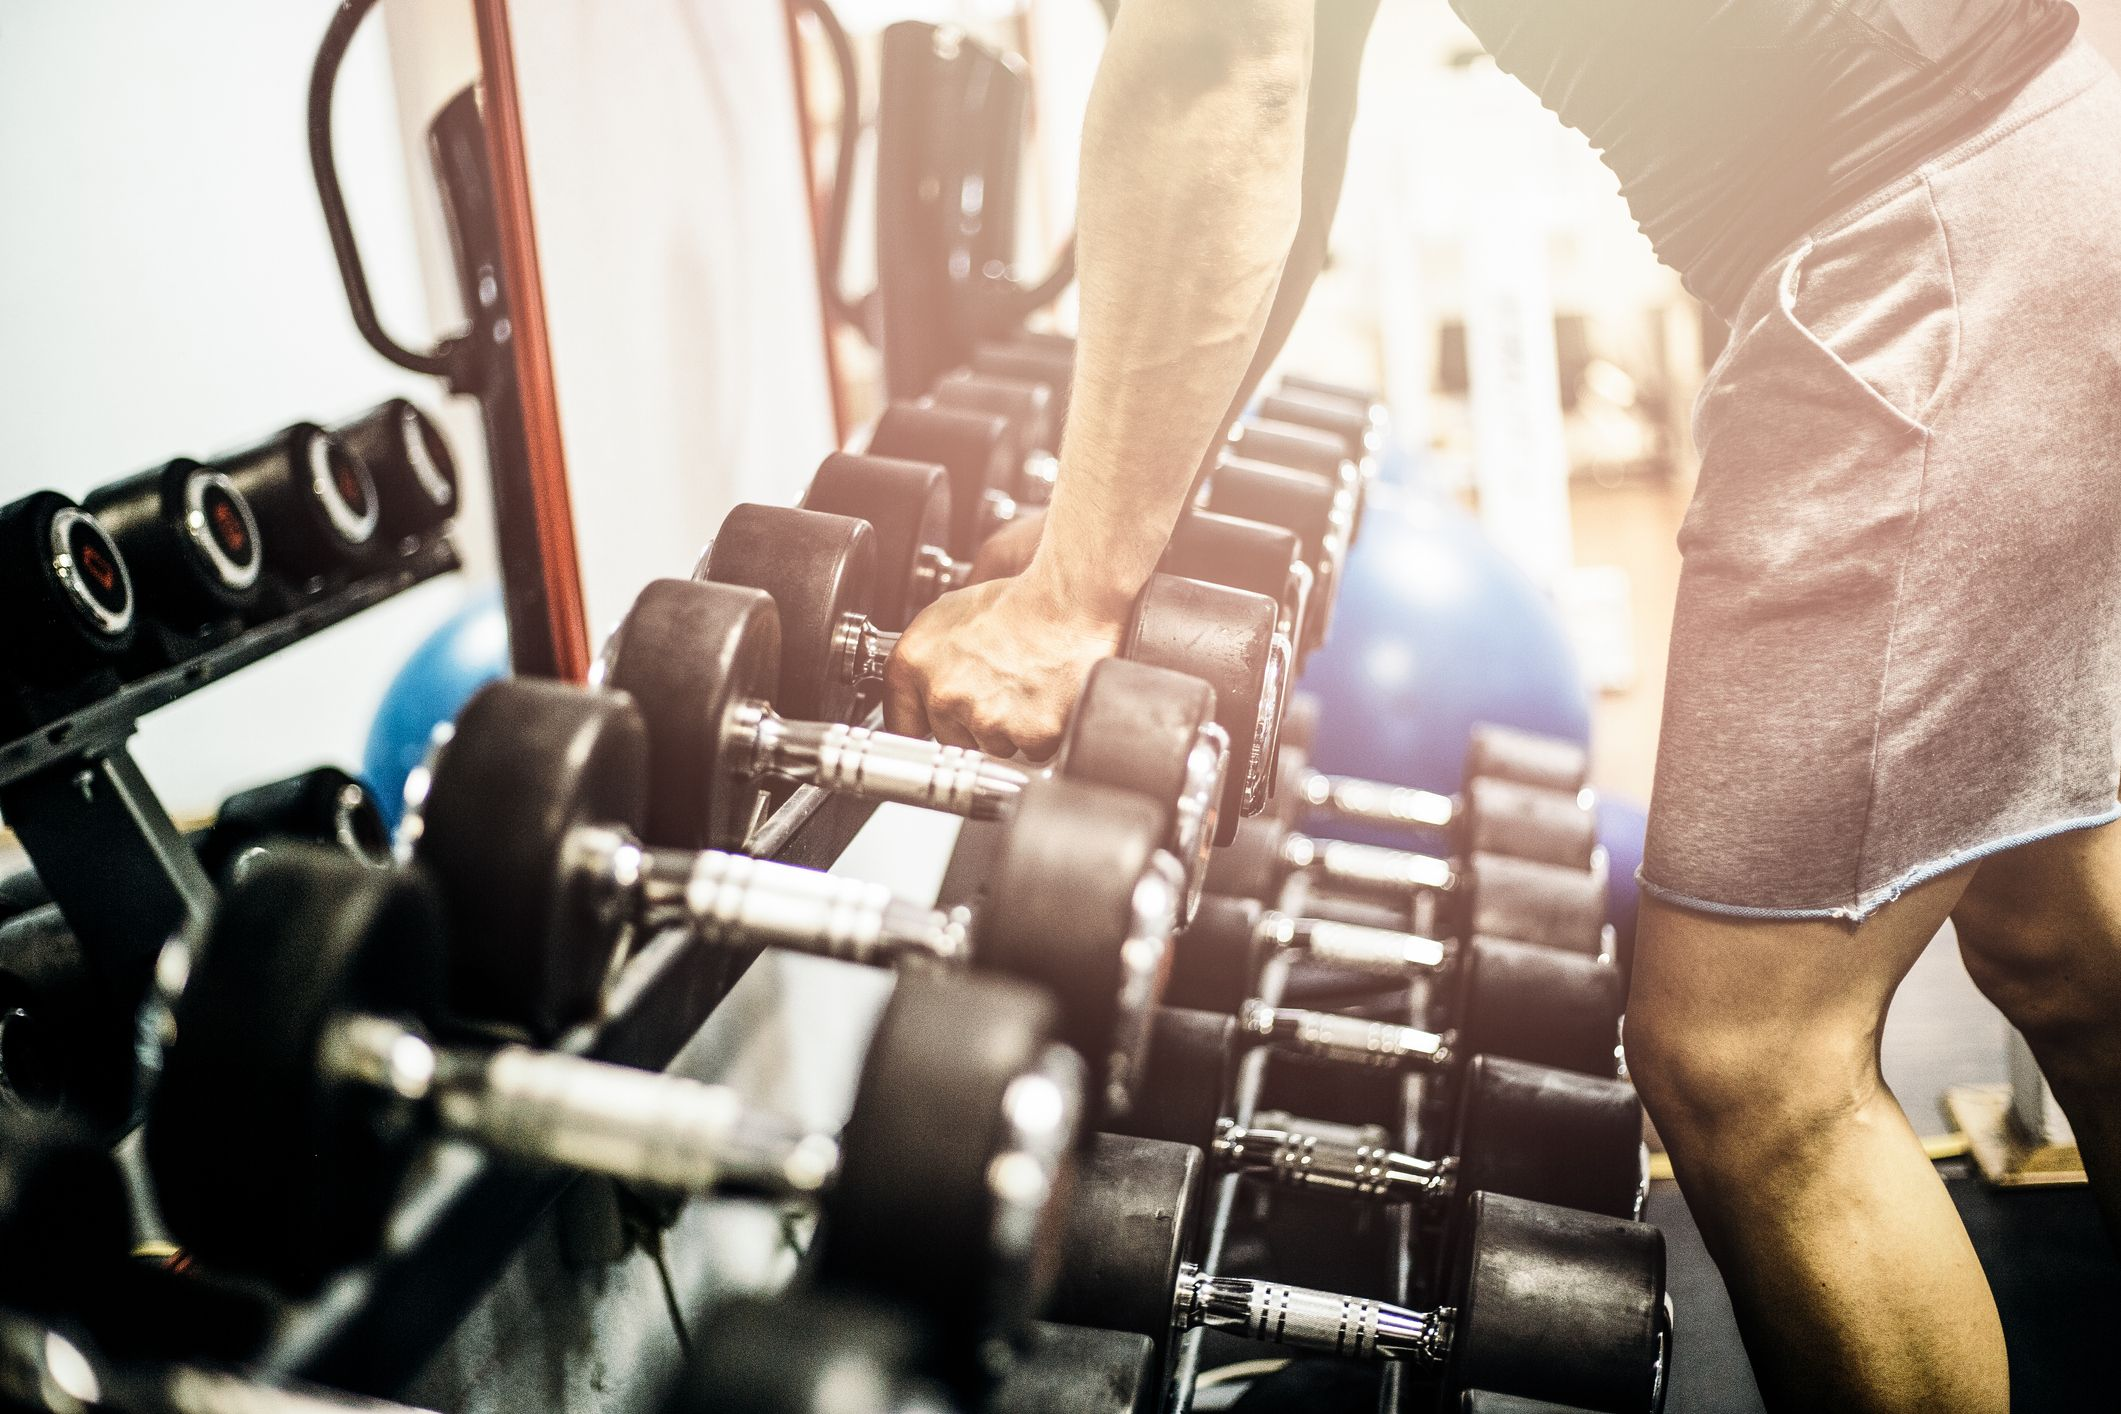 15 Minute Dumbbell Workout Superset Get Results Even Faster With This Intense Circuit